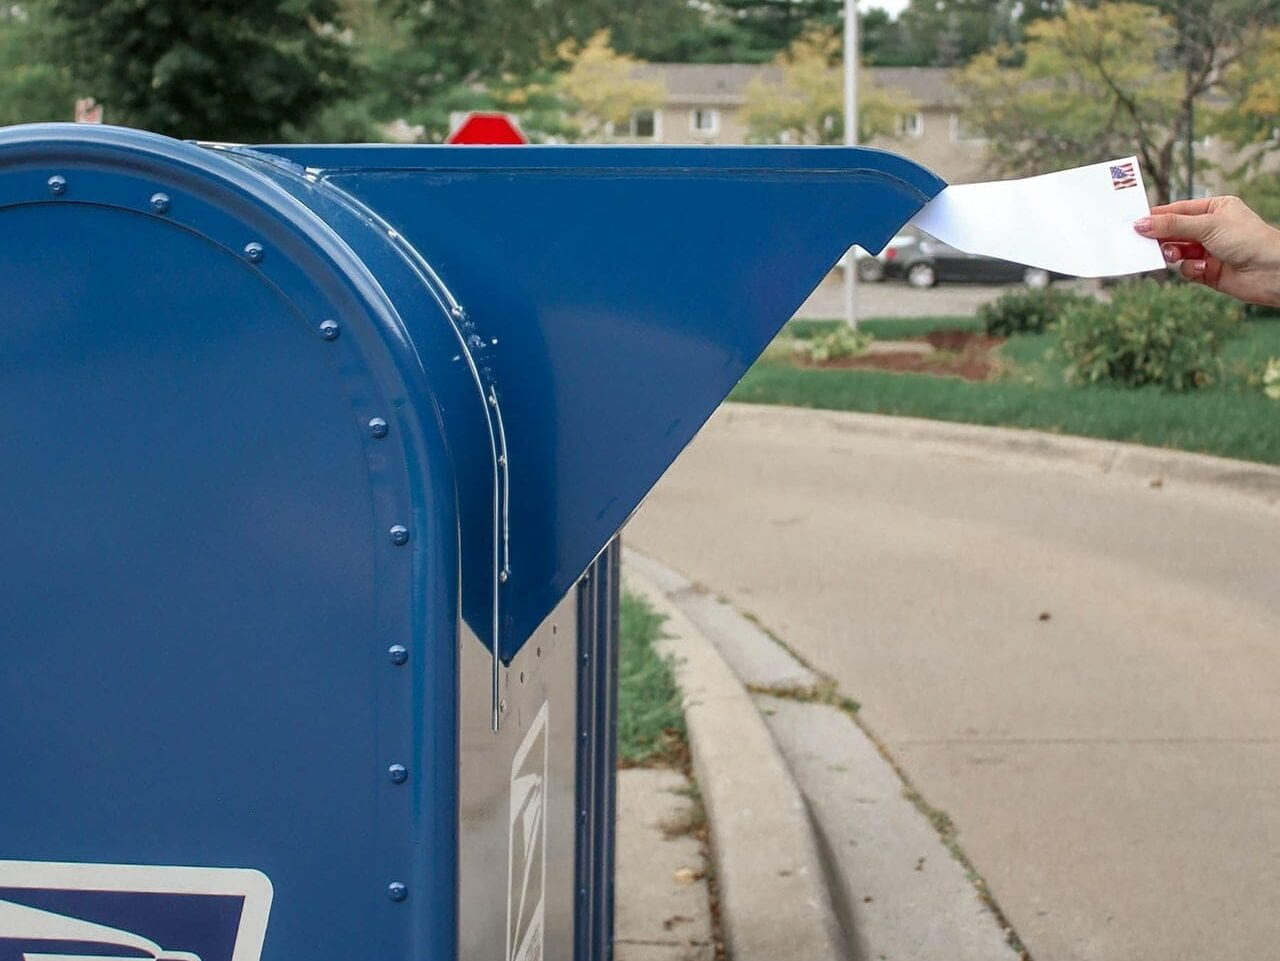 An American voter putting their accessible ballots in a mailbox.